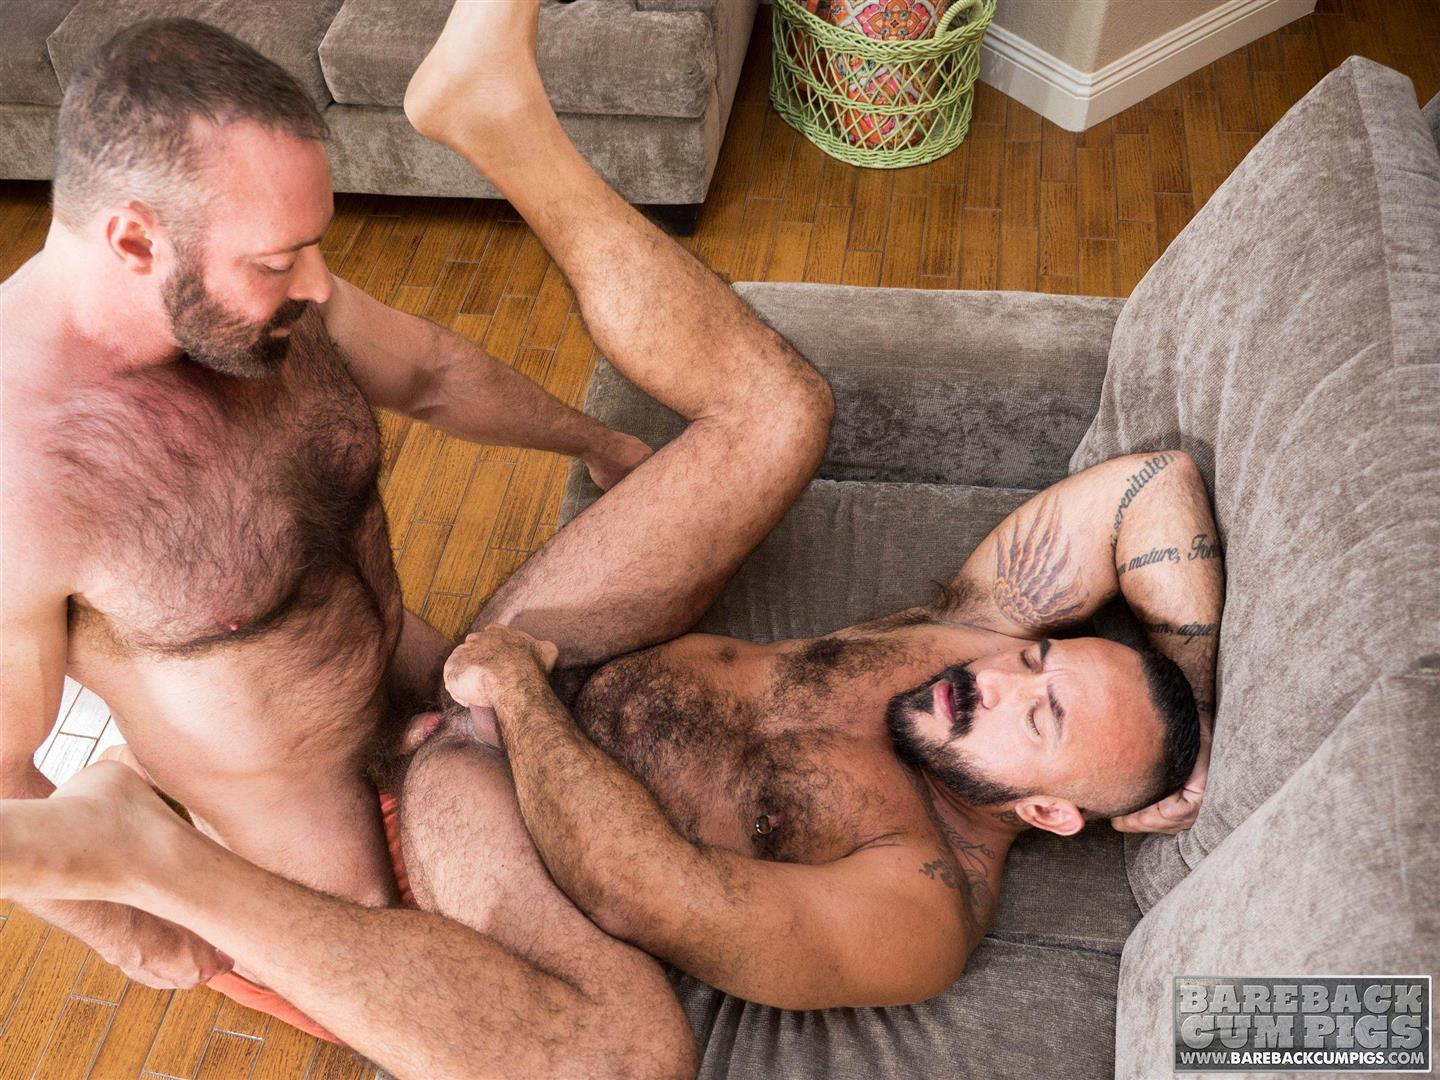 Bareback-Cum-Pigs-Brad-Kalvo-and-Alessio-Romero-Hairy-Muscle-Daddys-Fucking-Bareback-Free-Gay-Porn-09 Hairy Muscle Daddy Aggressive Bareback Sex Video